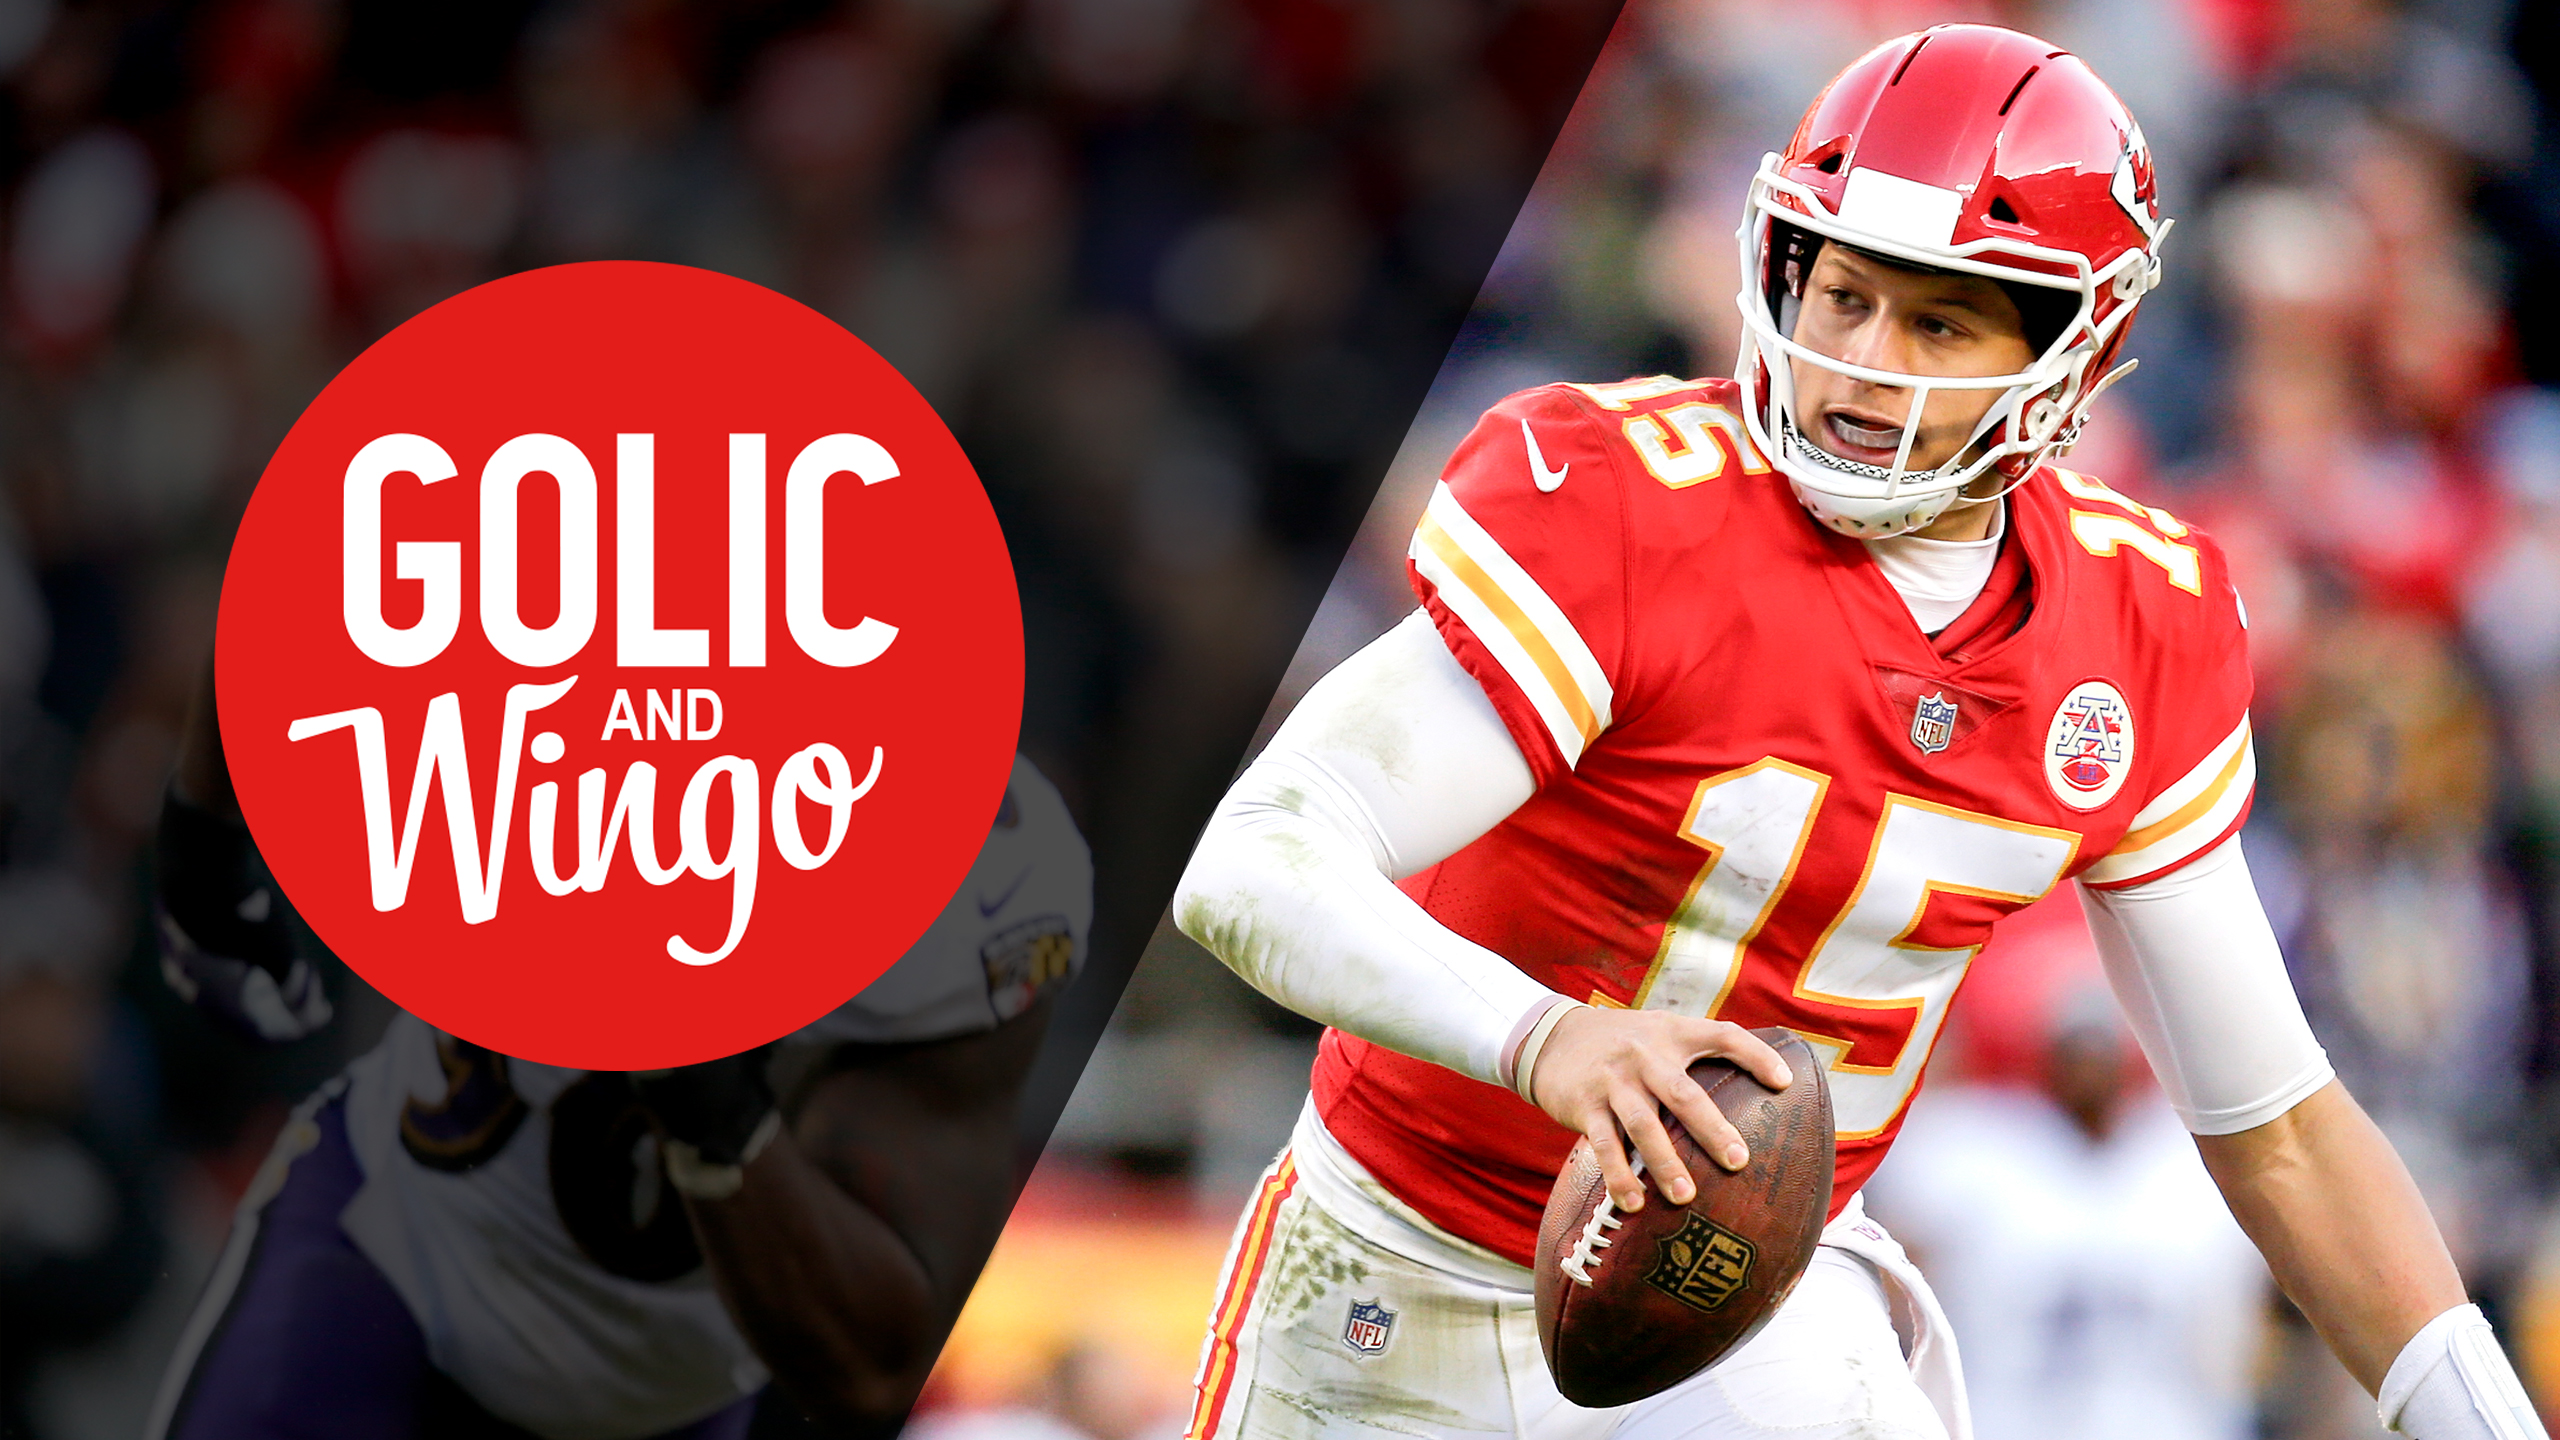 Wed, 12/12 - Golic and Wingo